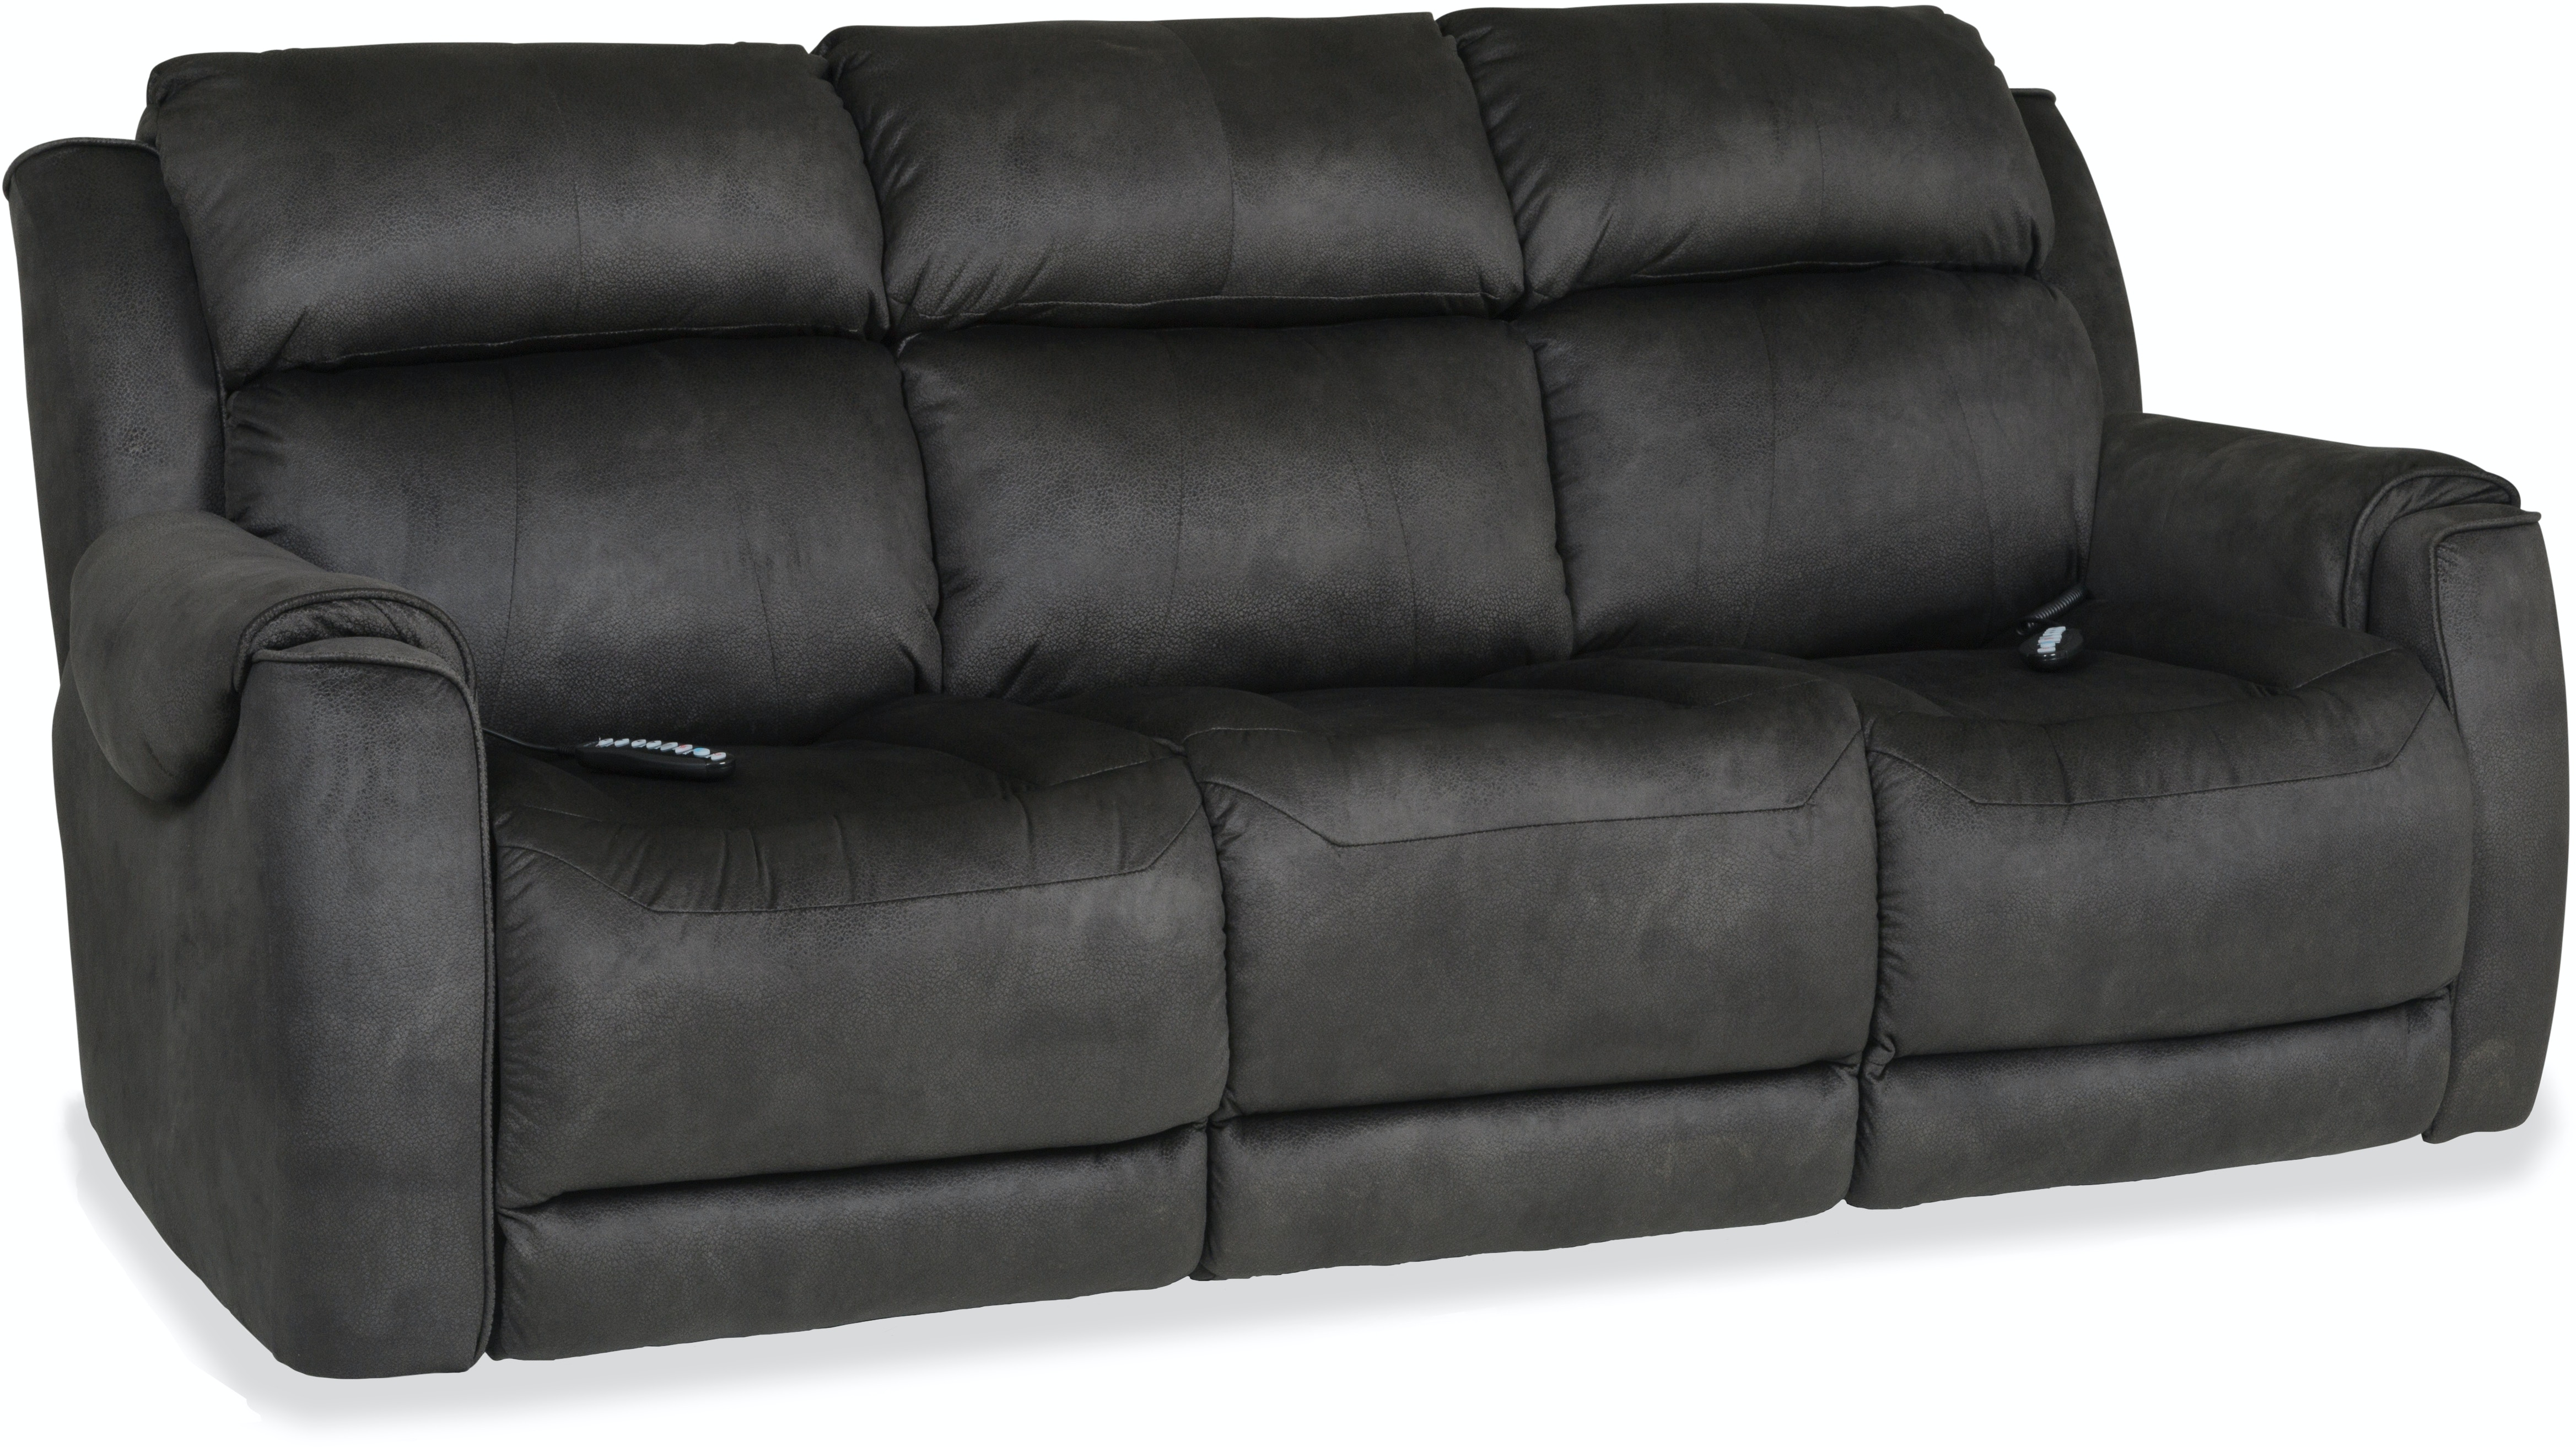 Living Room Safe Bet Power Reclining Sofa With Heat Massage